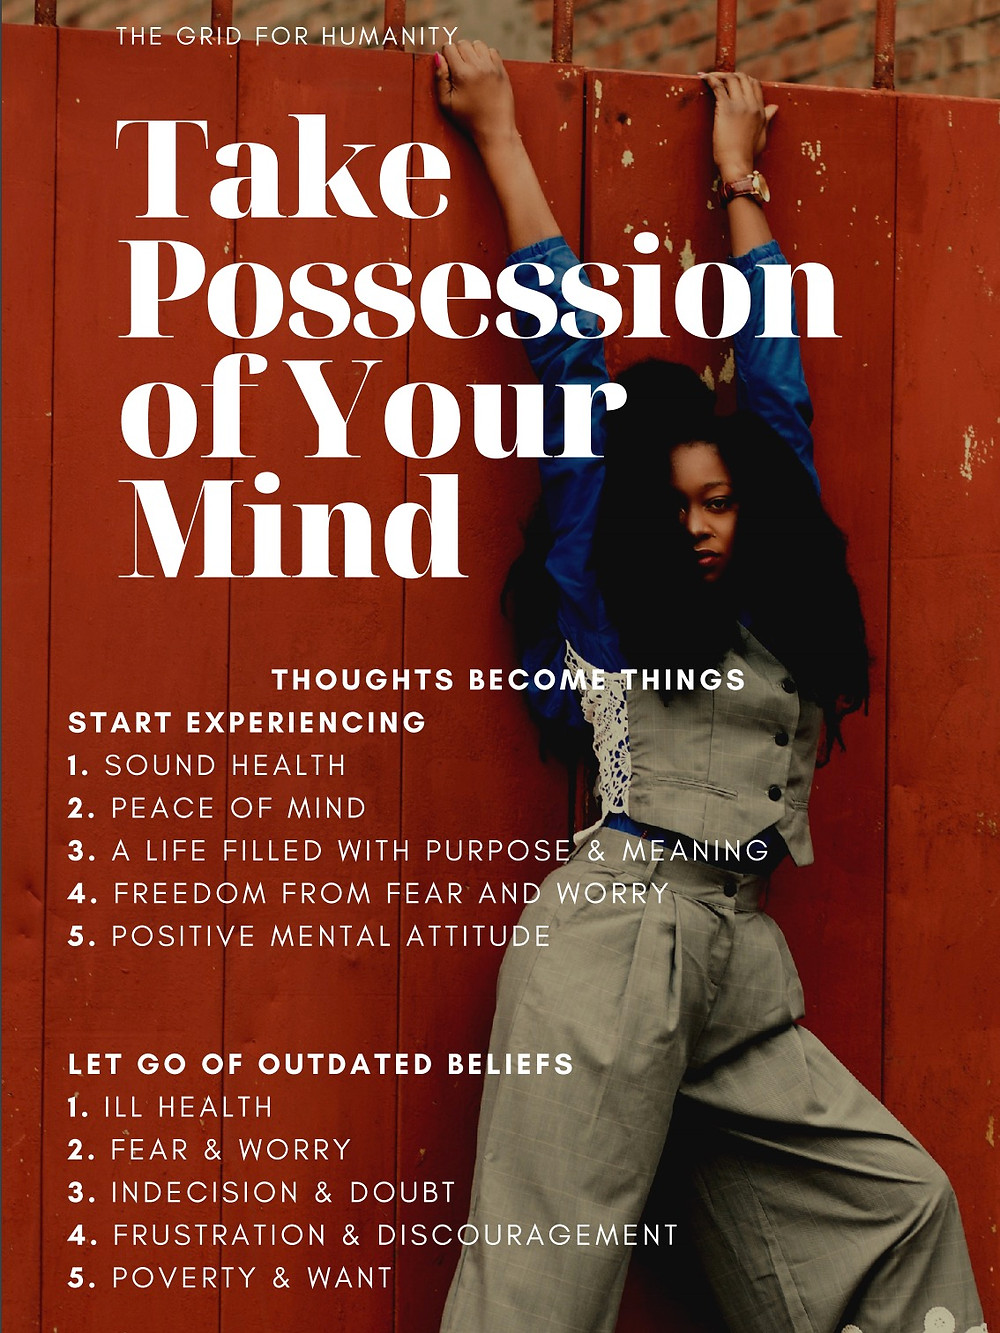 Take Possession Of Your Mind.